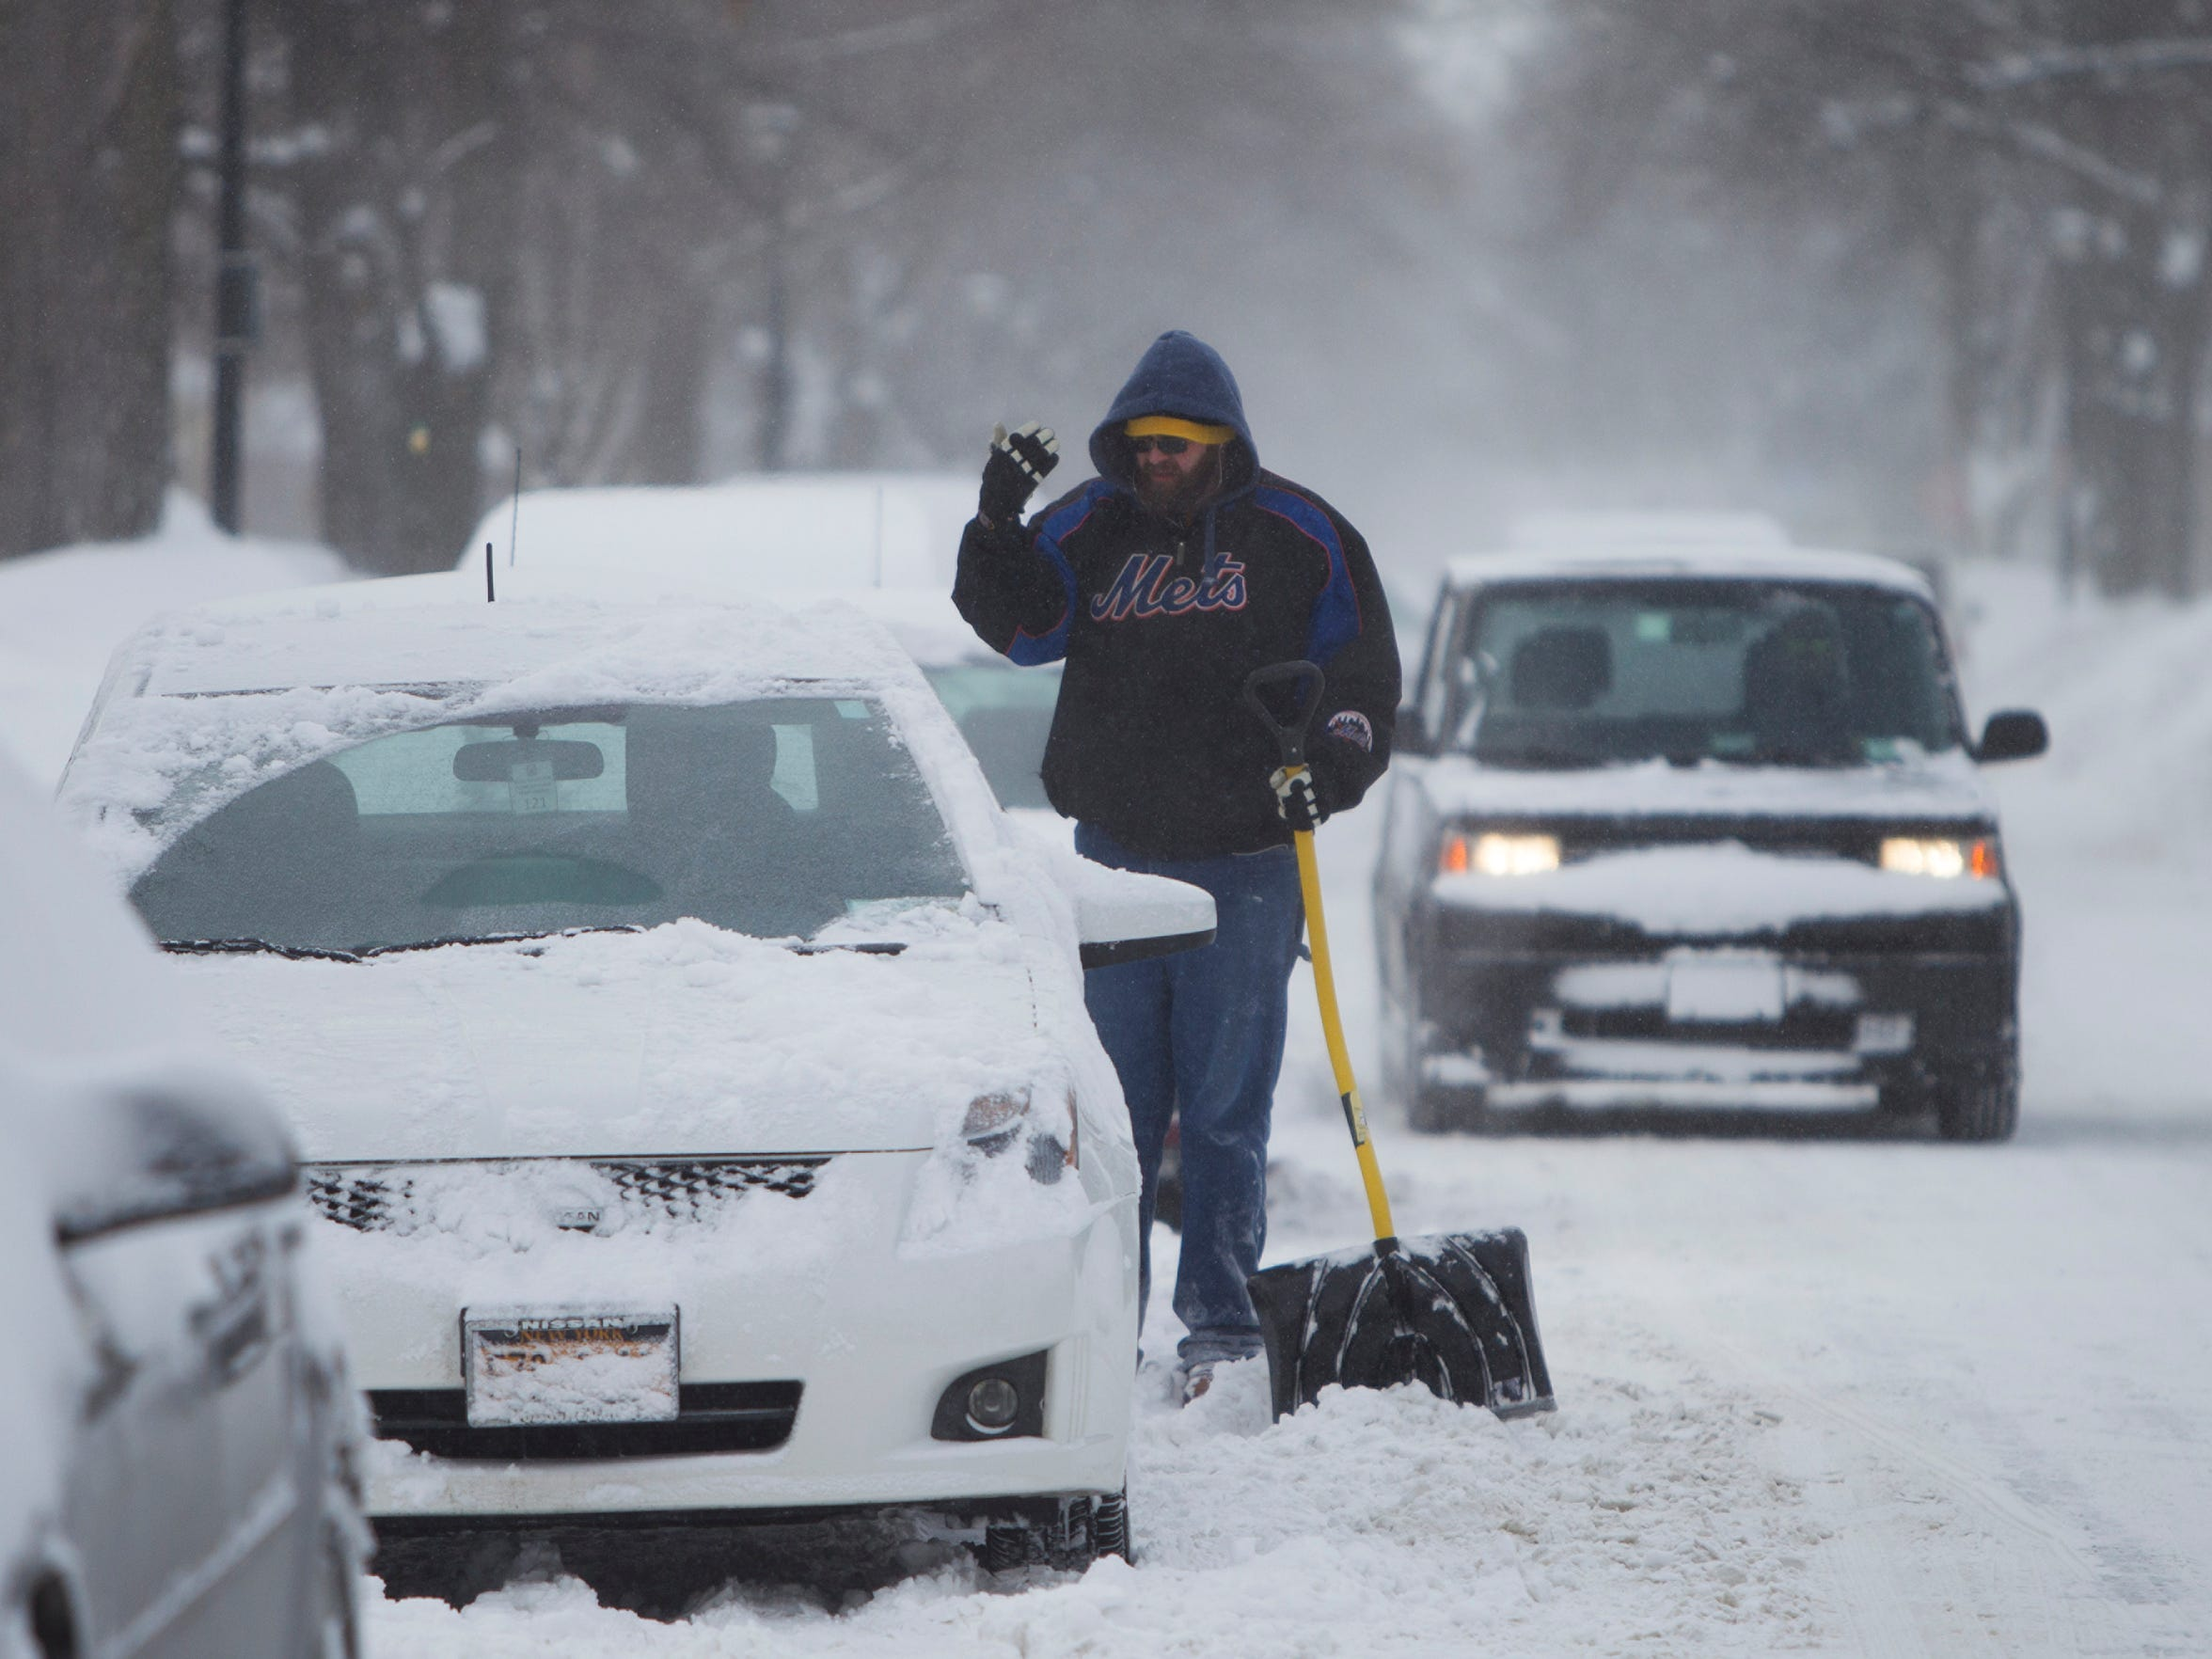 Sean Conlon helps his friend dig his car out on Vick Park A on Sunday, February 15, 2015.